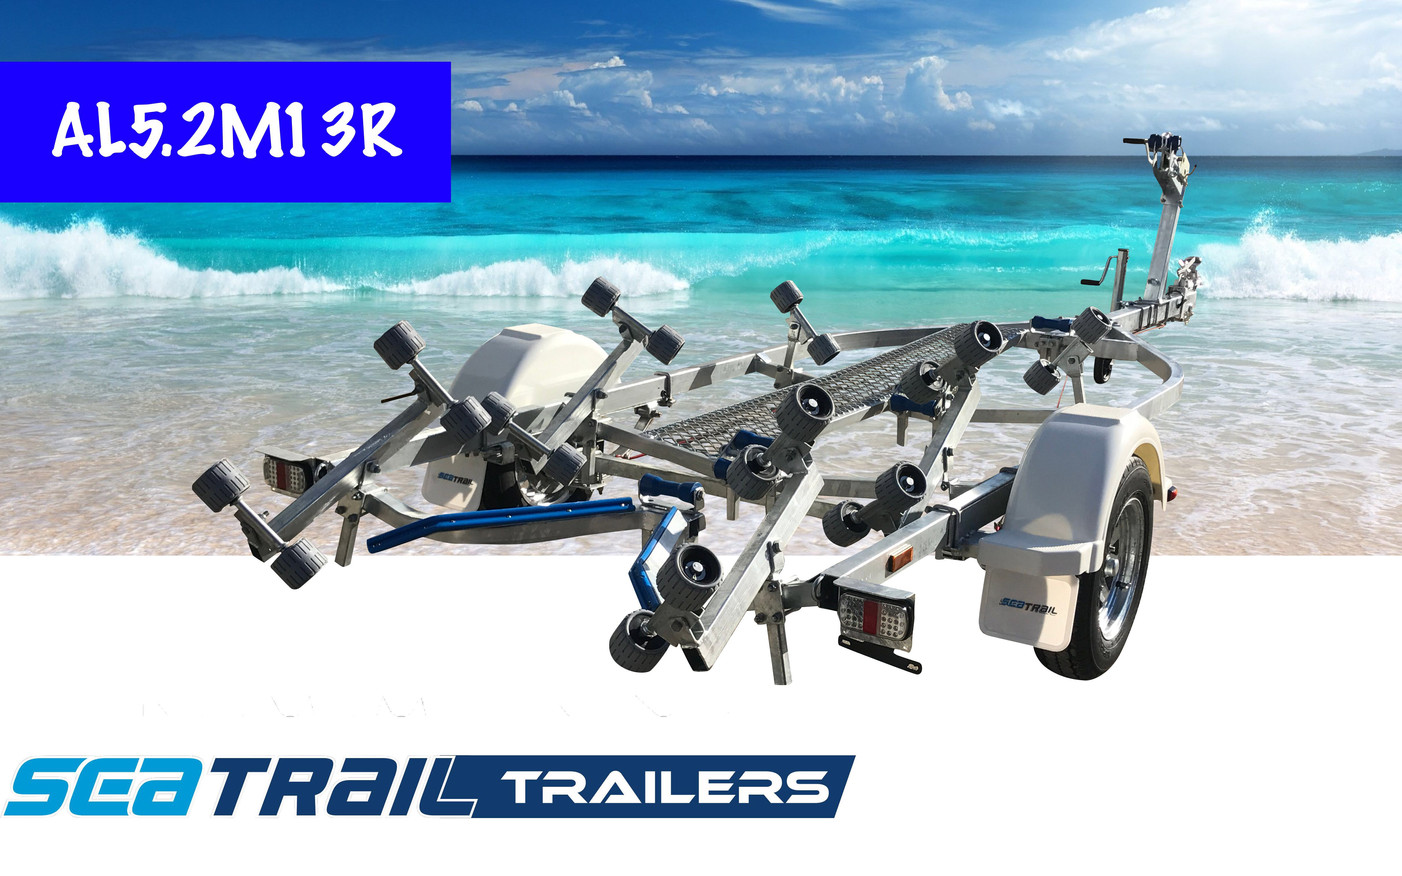 SEATRAIL AL5.2M13R ROLLERED BOAT TRAILER